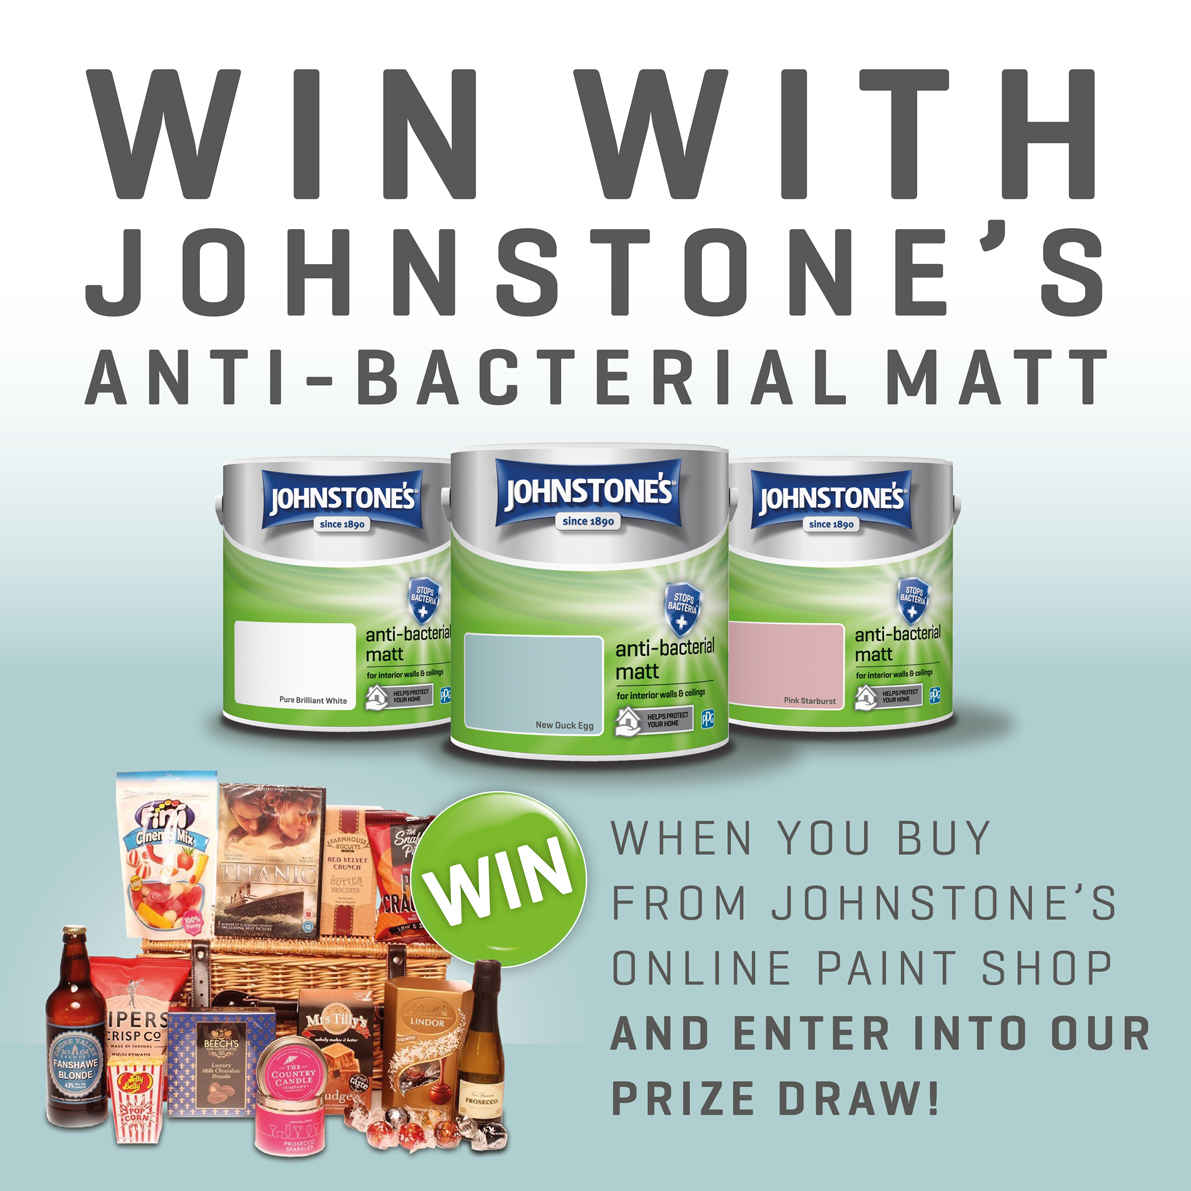 Fancy winning a Night In hamper full of goodies for the whole family to enjoy? Head over to the Johnstones Paint Shop and simply purchase a tin of our Brand New Anti-bacterial Paint to enter! Click here to shop 👉 bit.ly/33REbuB T&Cs apply.